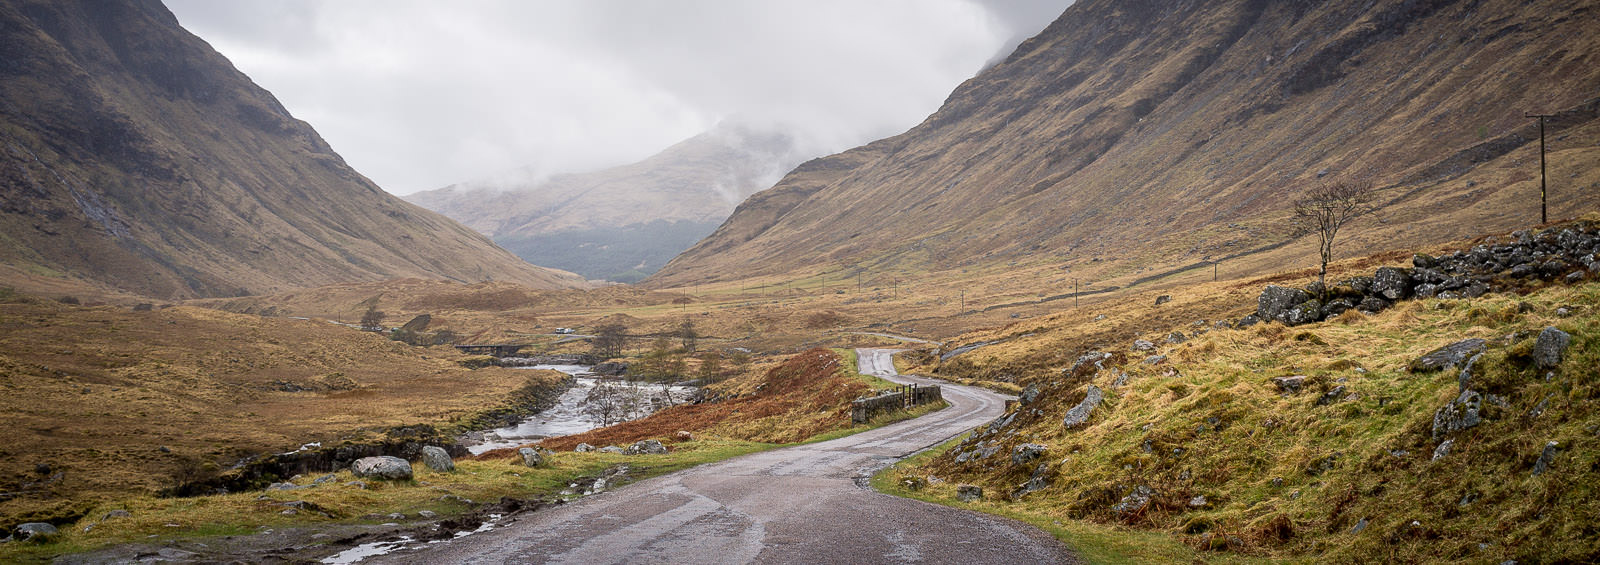 Glen Etive, location for the James Bond film Skyfall